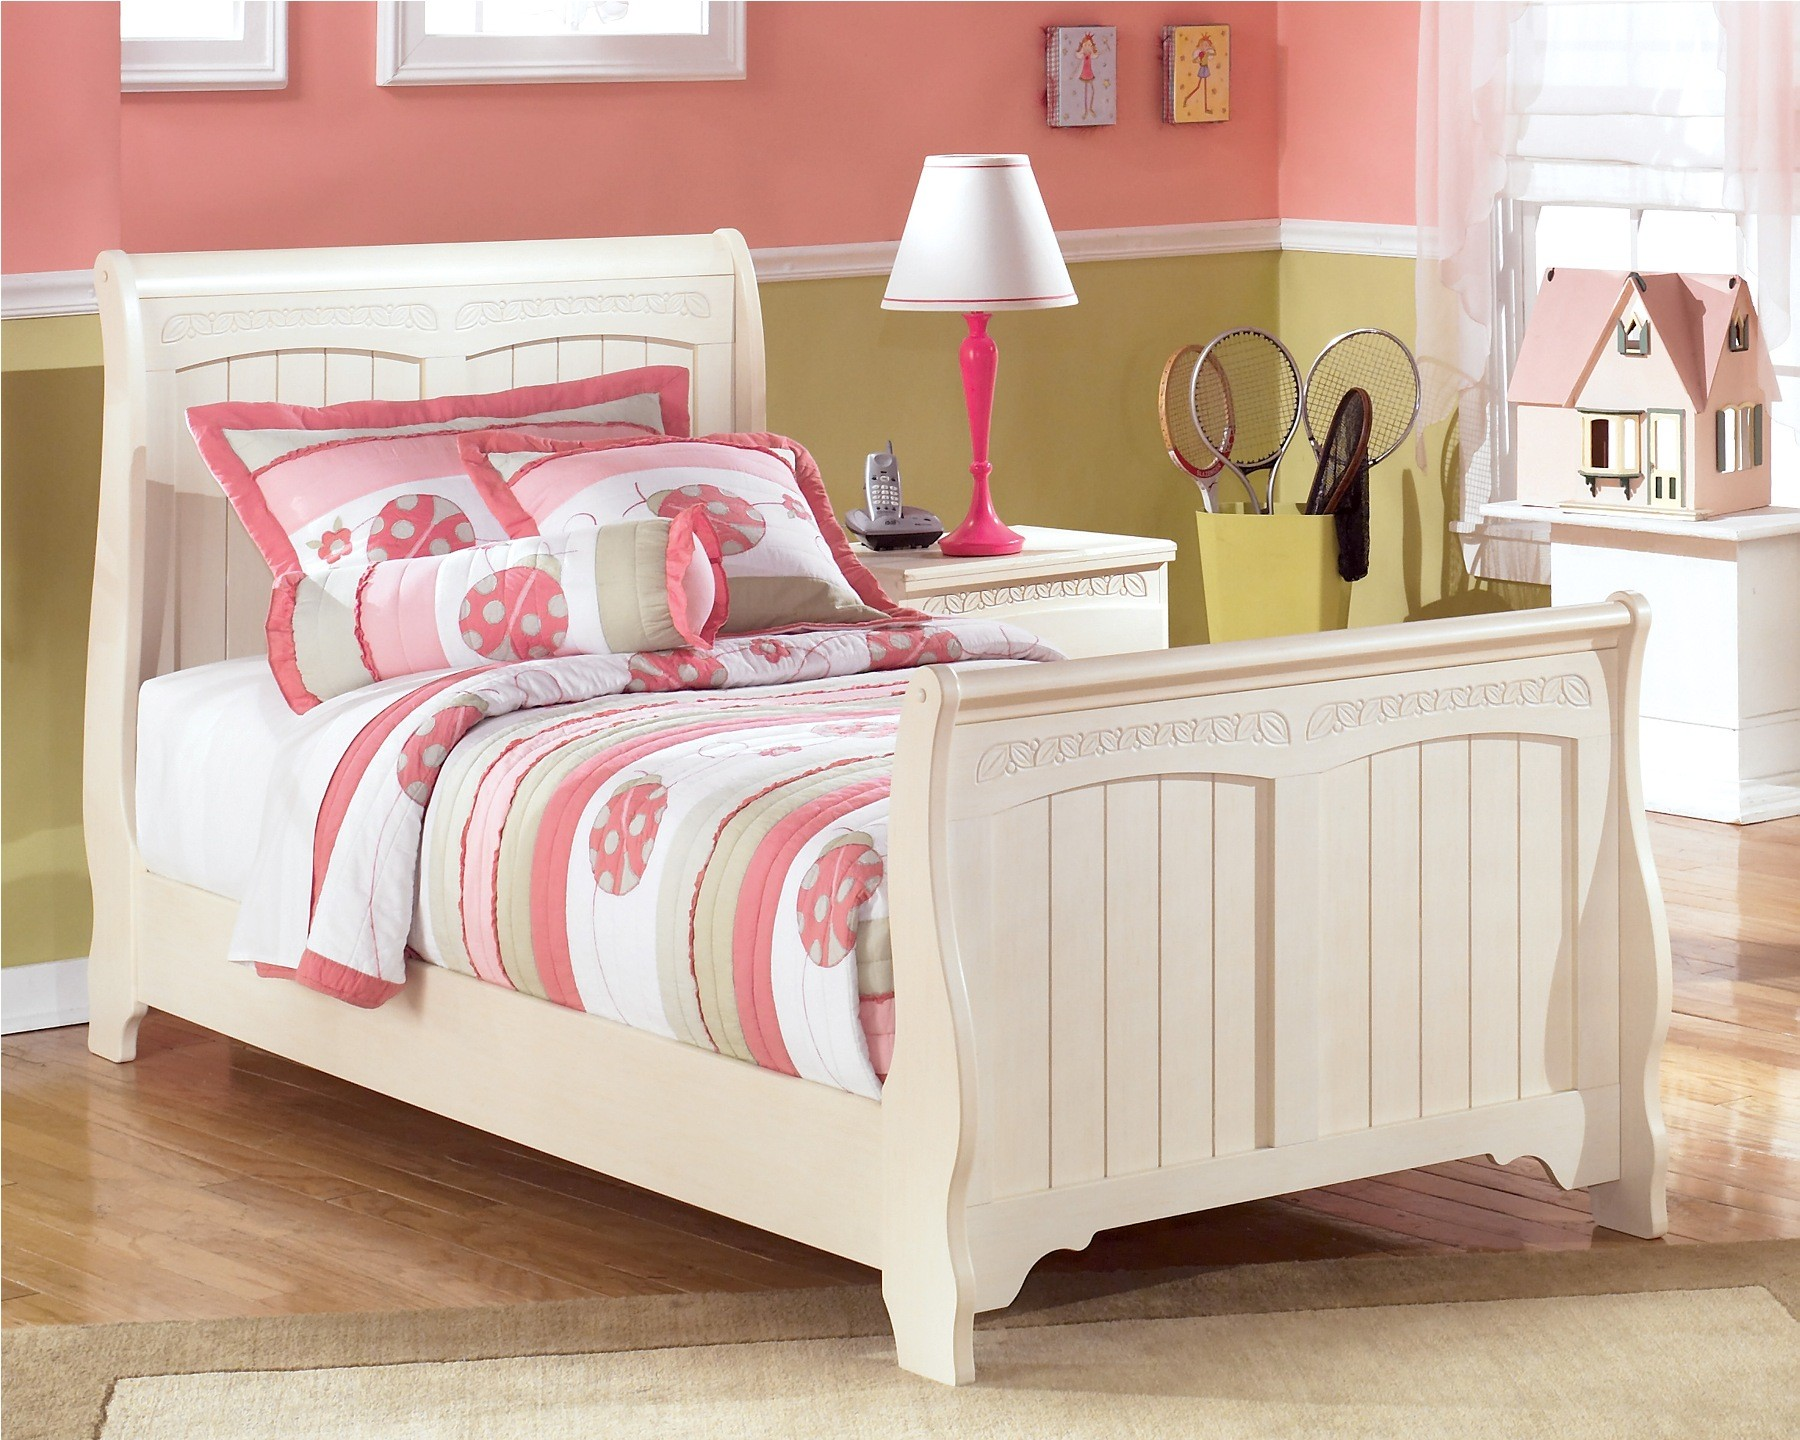 Cottage retreat full sleigh bed from ashley b213 87 84 88 for Cottage retreat ii